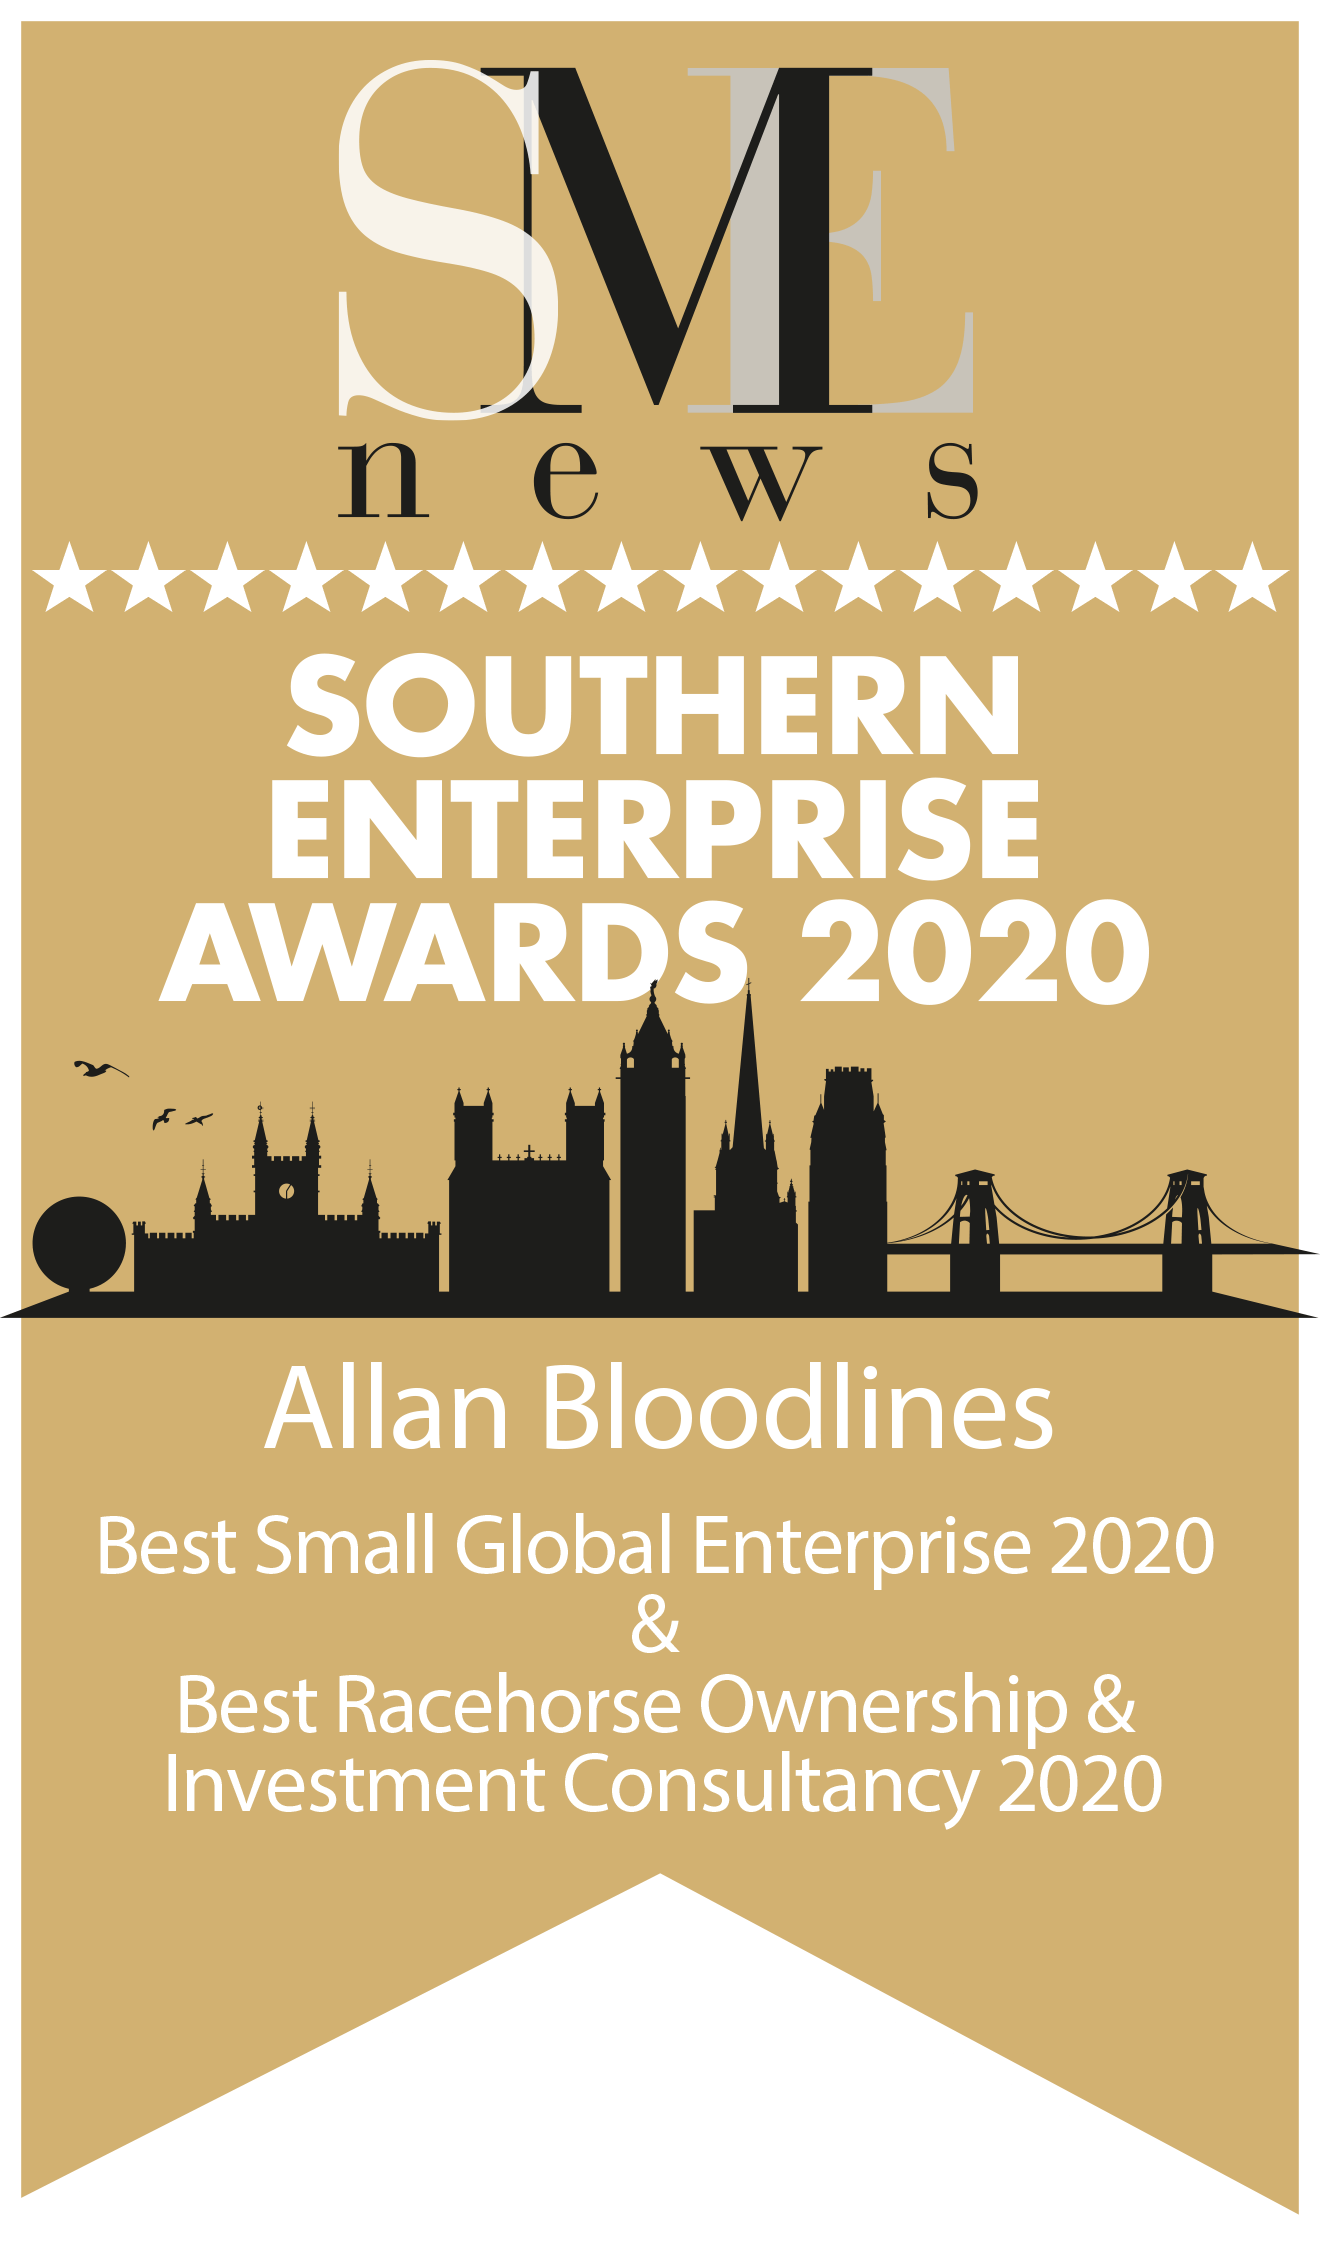 SME News Southern Enterprise Awards 2020 - AllanBloodlines - Best Small Global Enterprise 2020 _ Best Racehorse Ownership & Investment Consultancy 2020